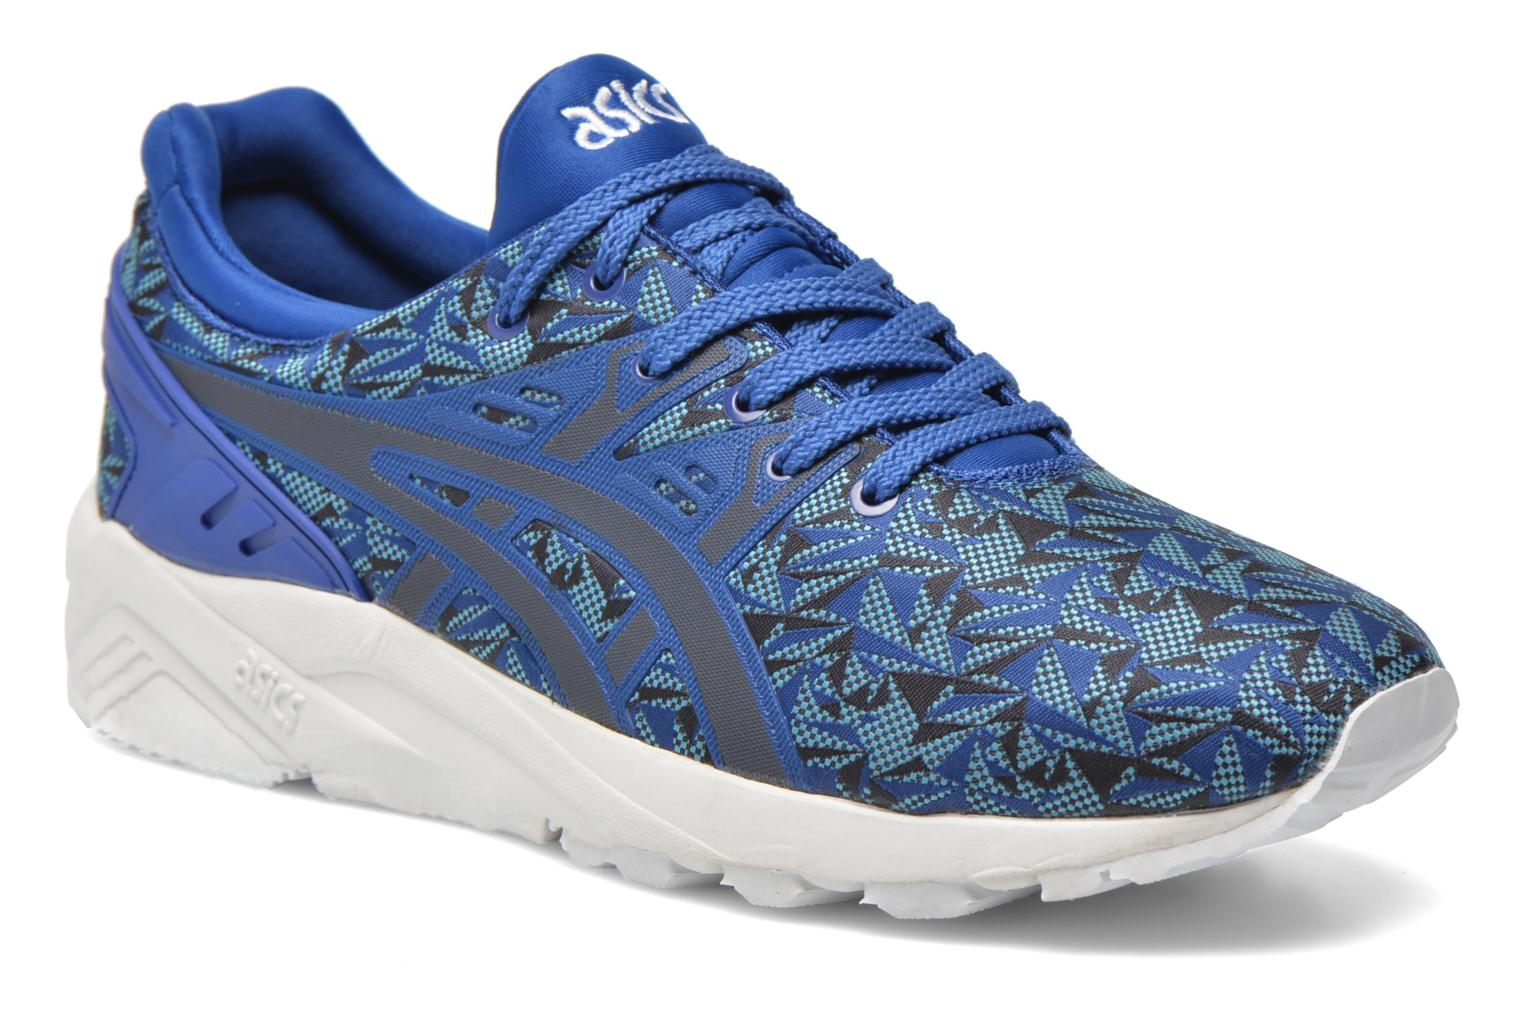 Gel-Kayano Trainer Evo Monaco Blue/Indian Ink